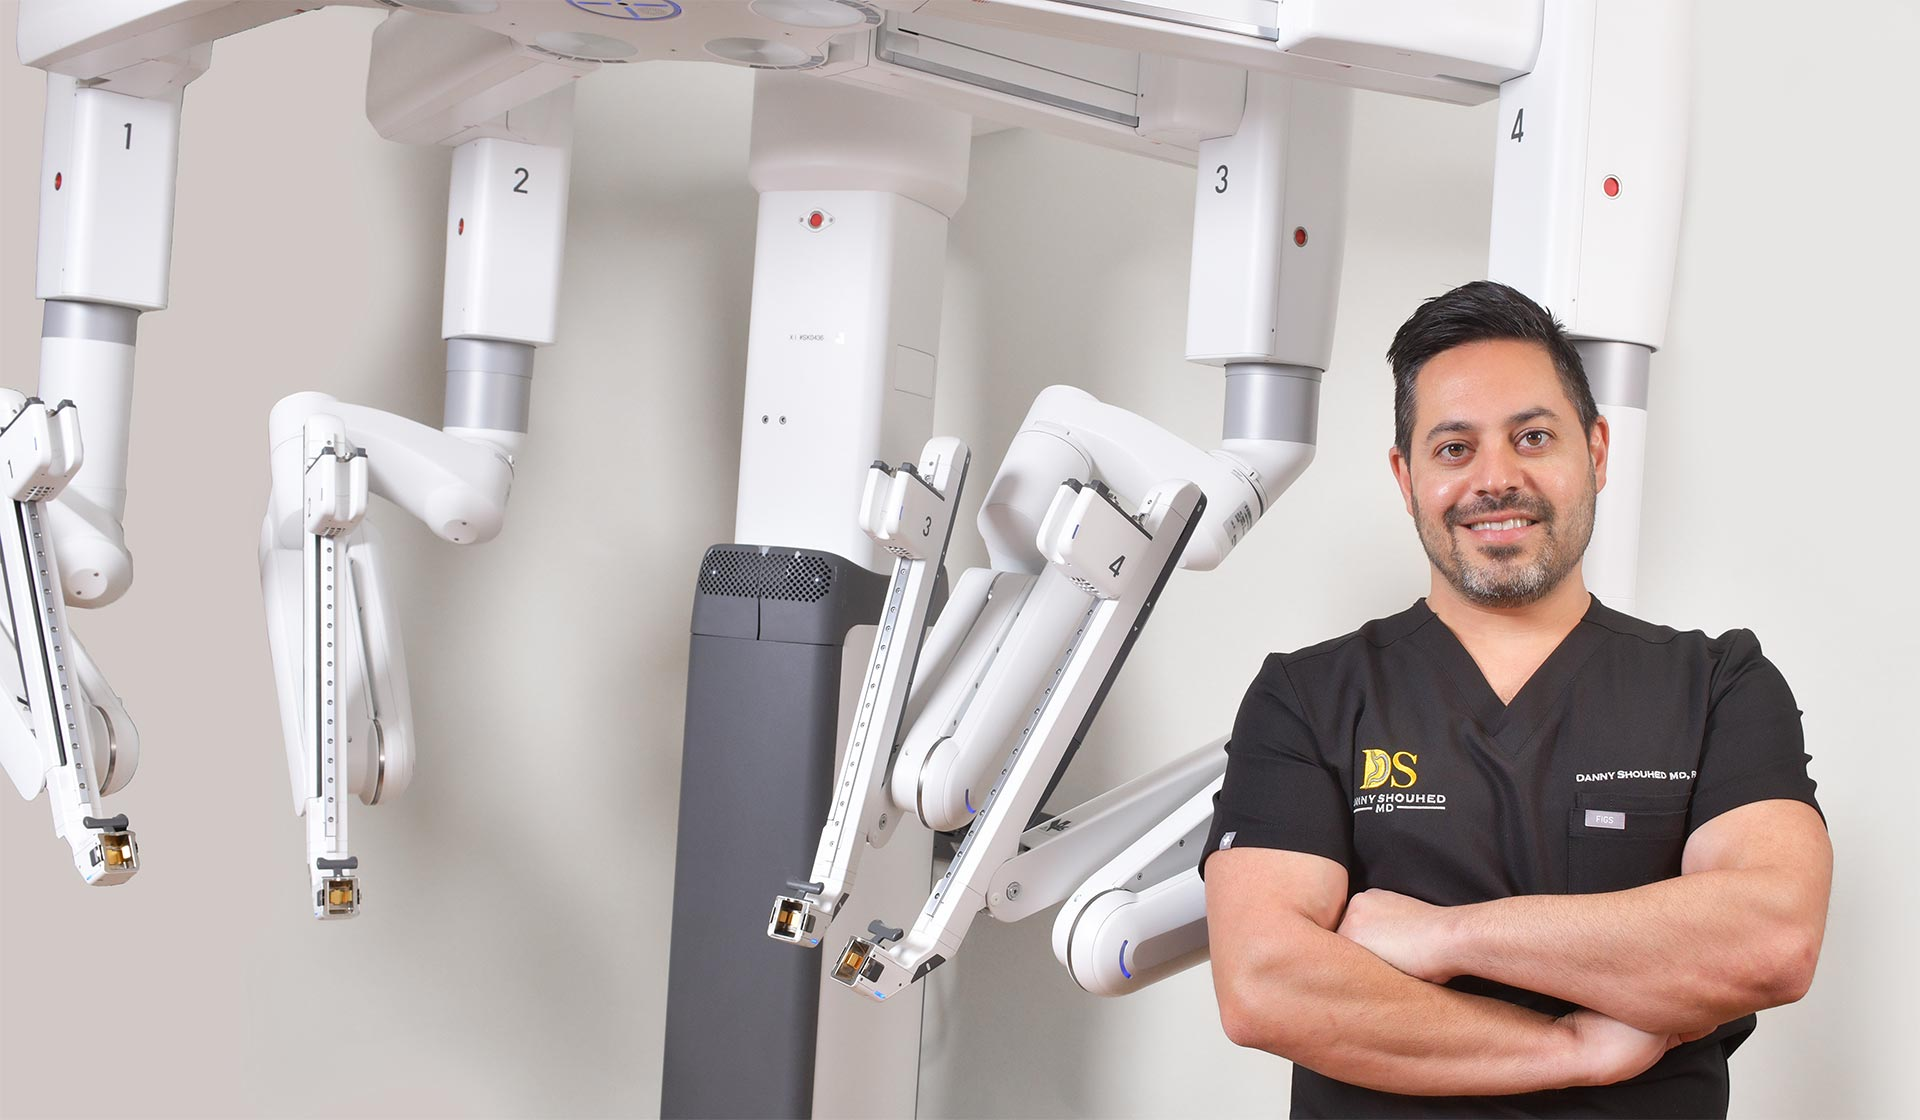 Danny Shouhed MD with robotic surgical system he uses for surgical procedures.